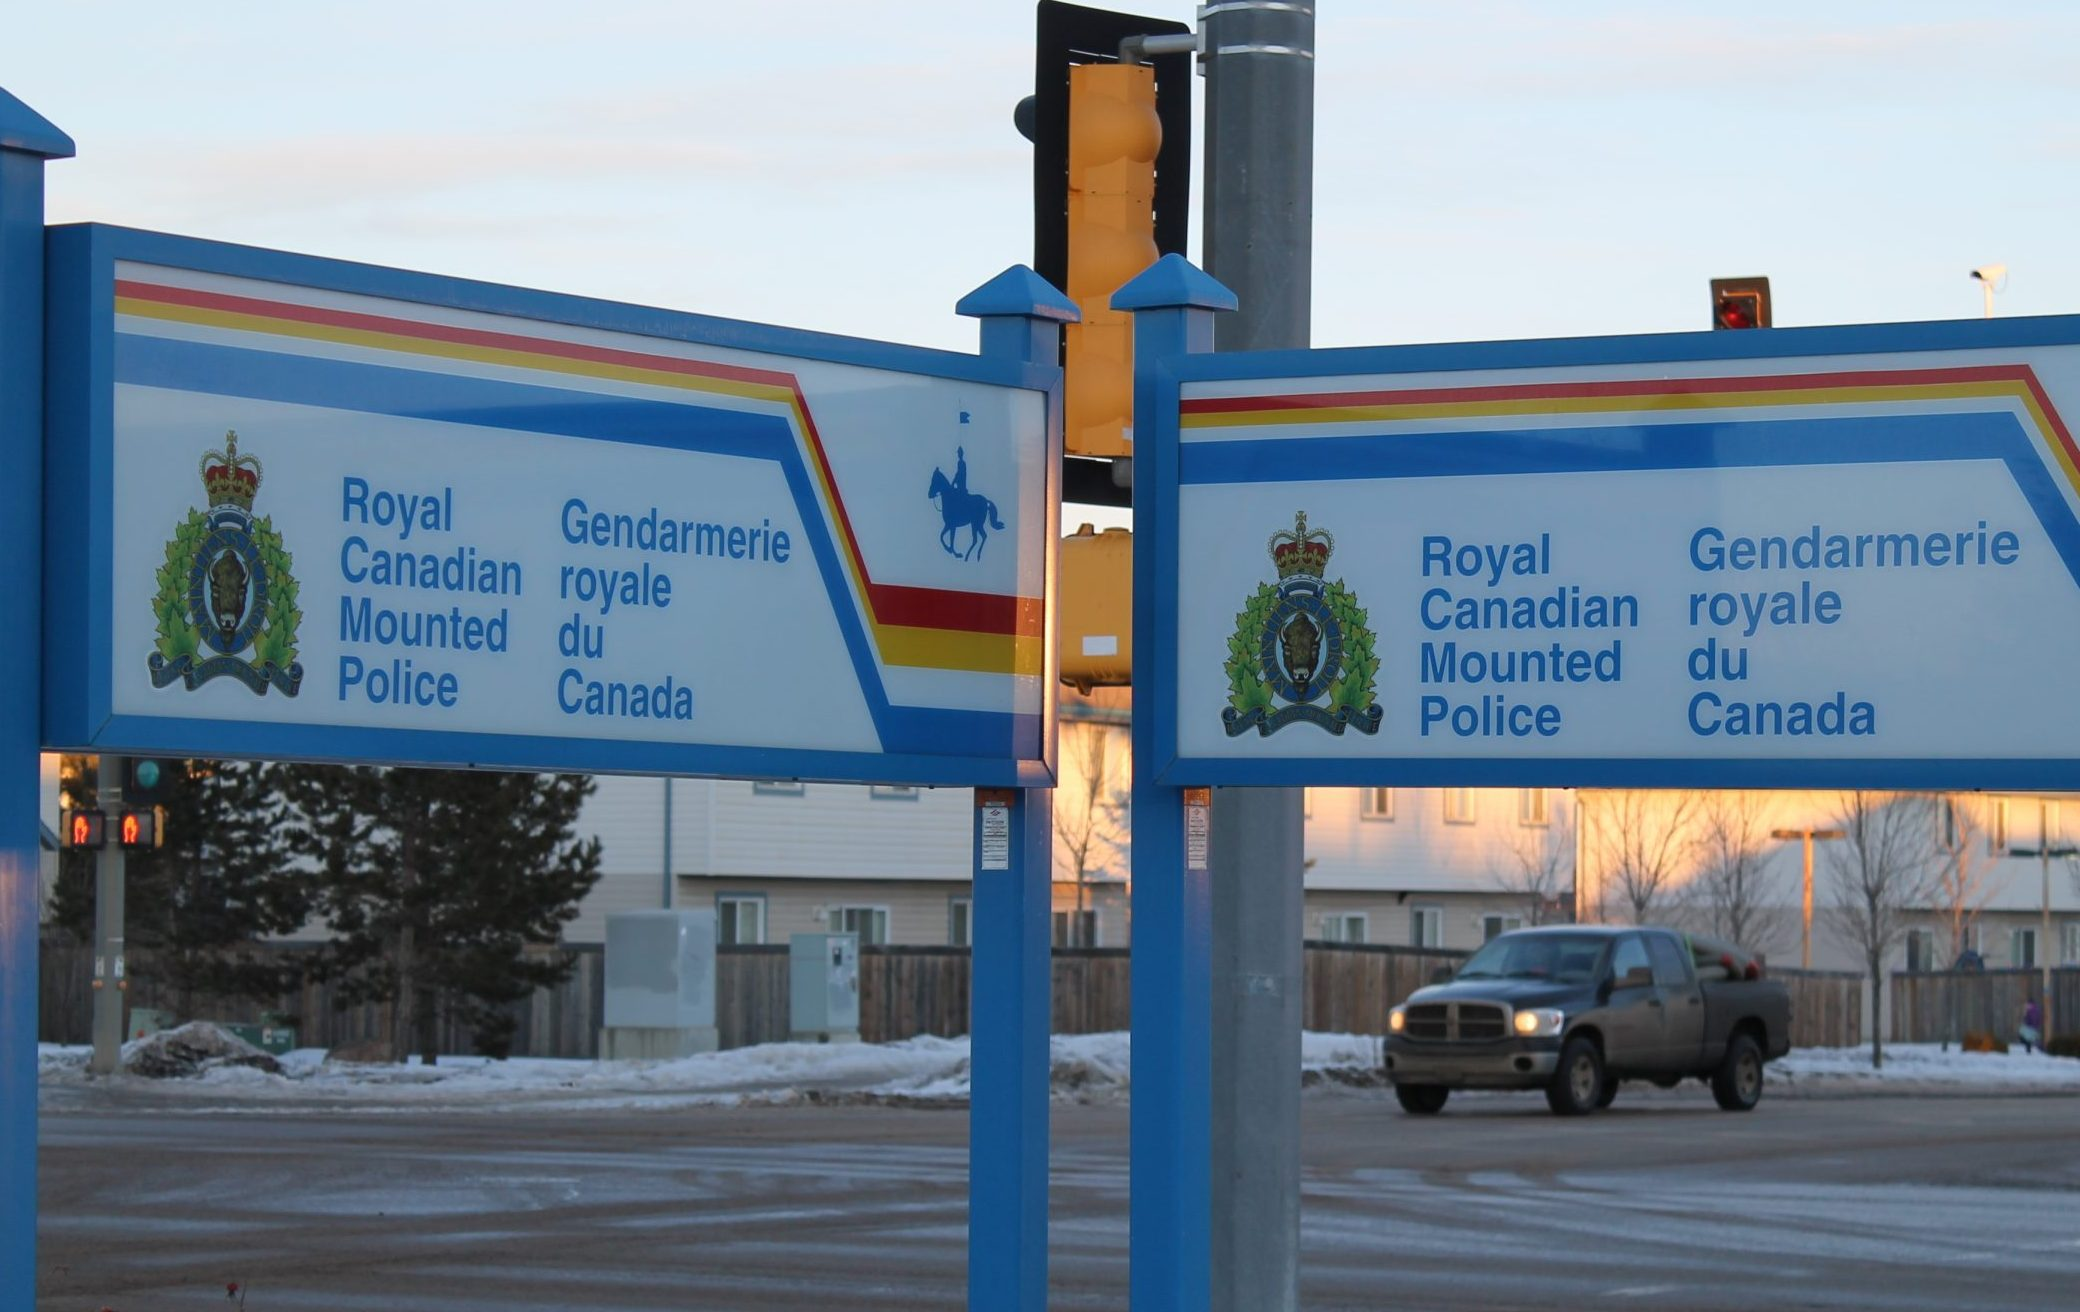 RCMP Looking For Information About Alleged Bus Shelter Incident